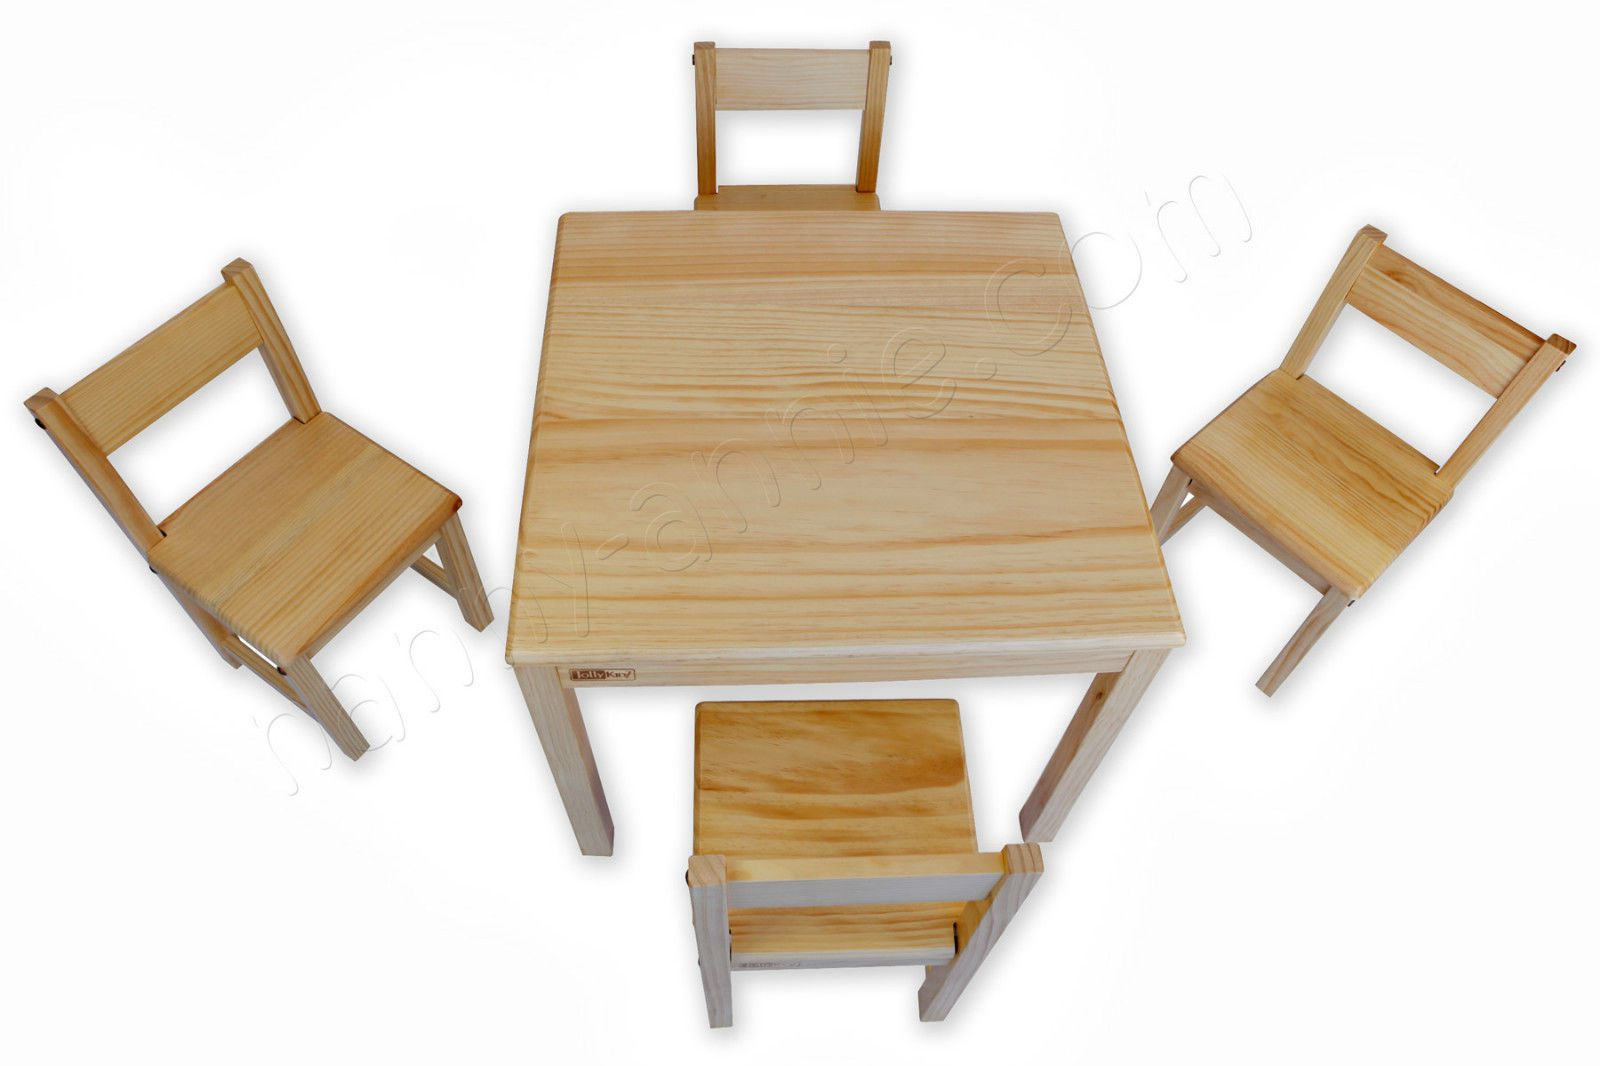 Wooden Kids Table And Chairs Jolly Kidz Children 39s Wooden Table And Four Chairs Kids